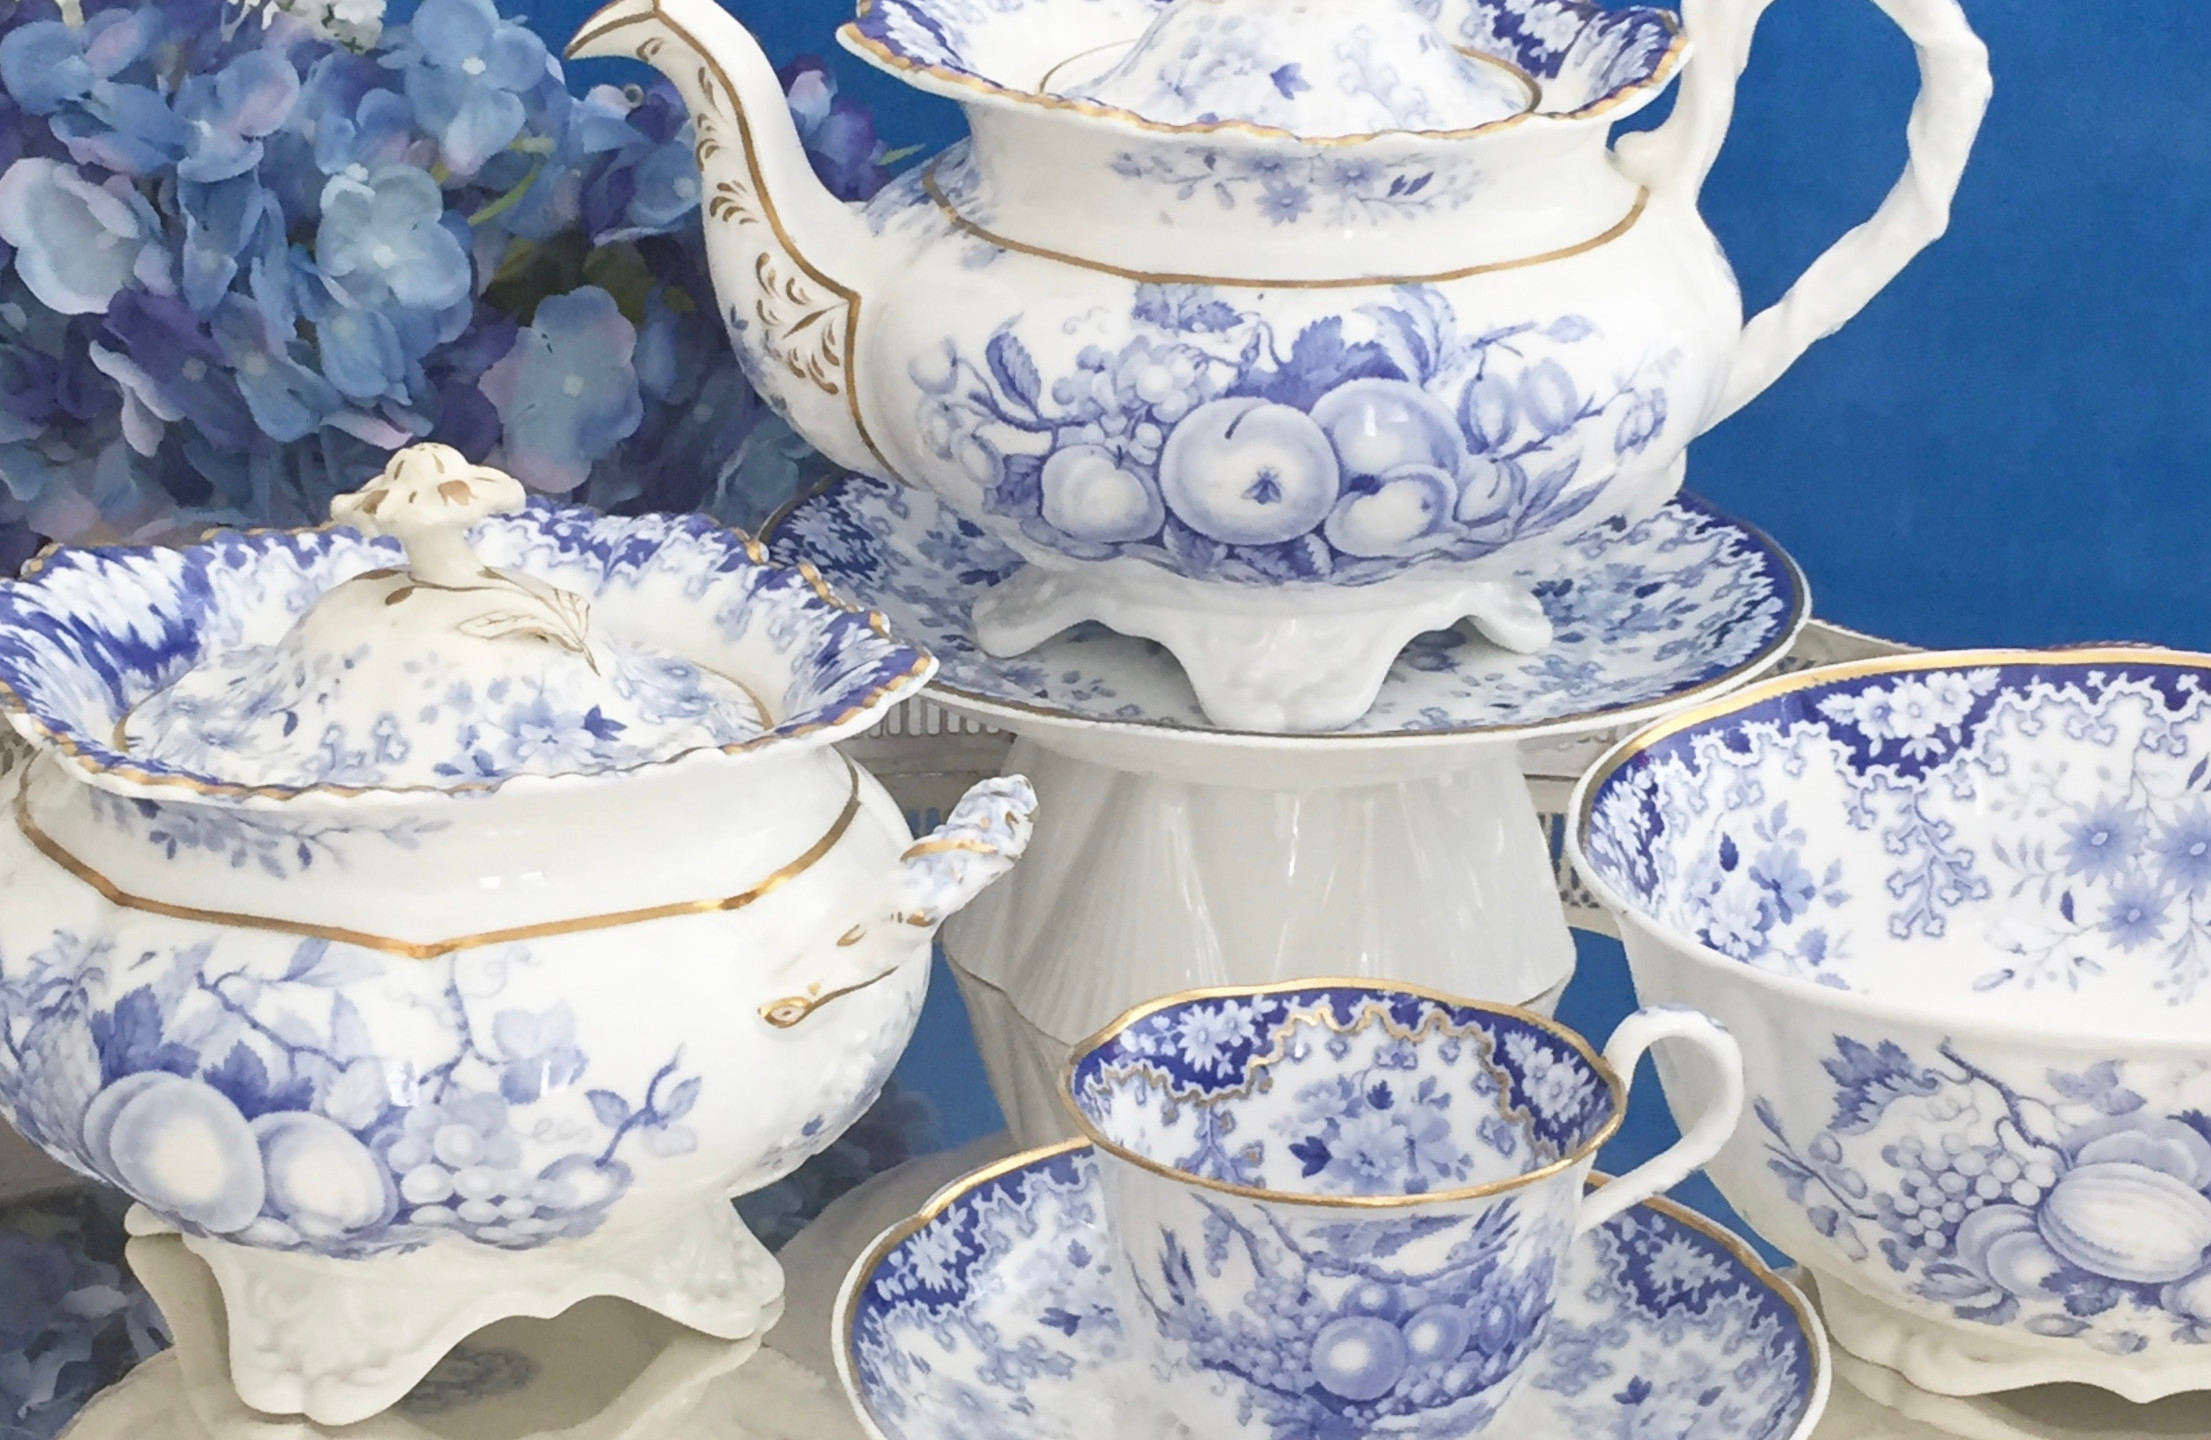 Minton Berlin-embossed tea service